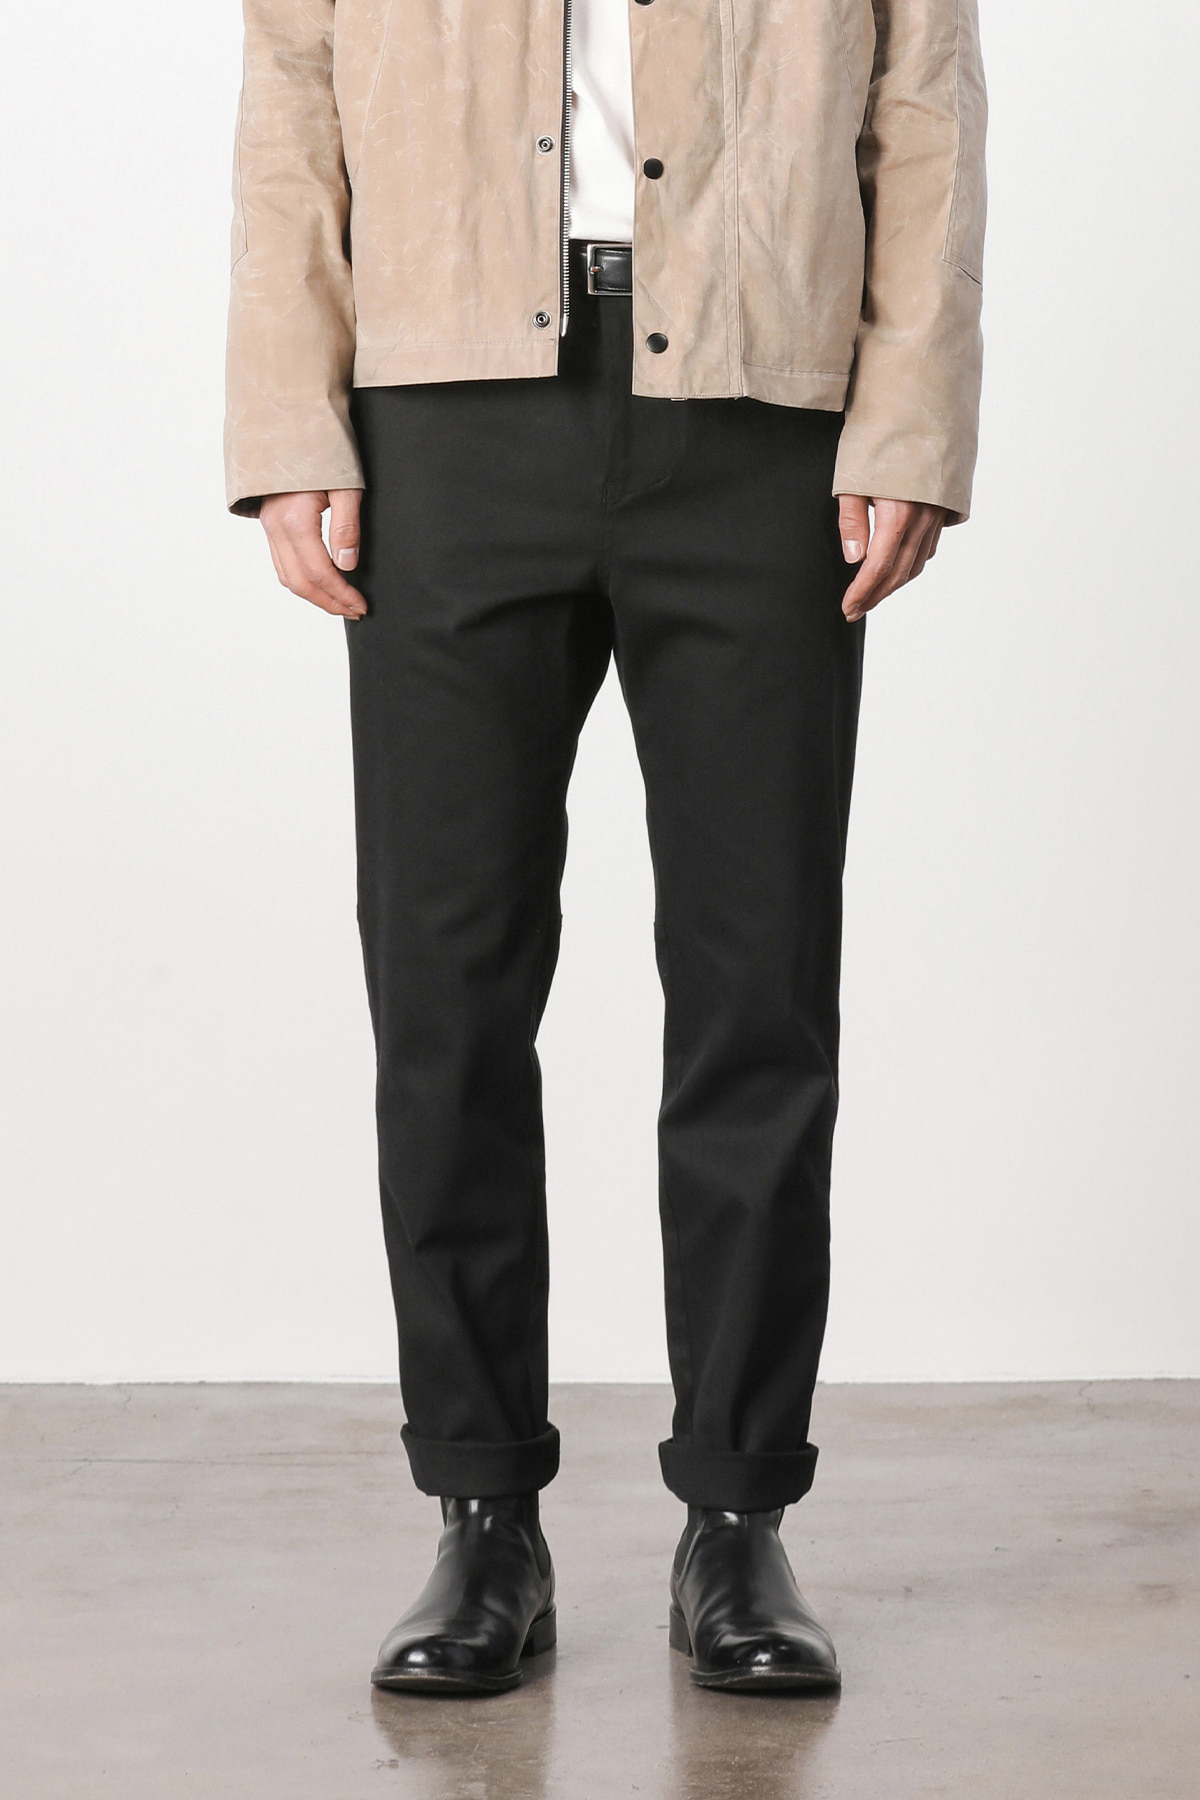 페이탈리즘 #jp01 Fatigue hound tapered pants (black)